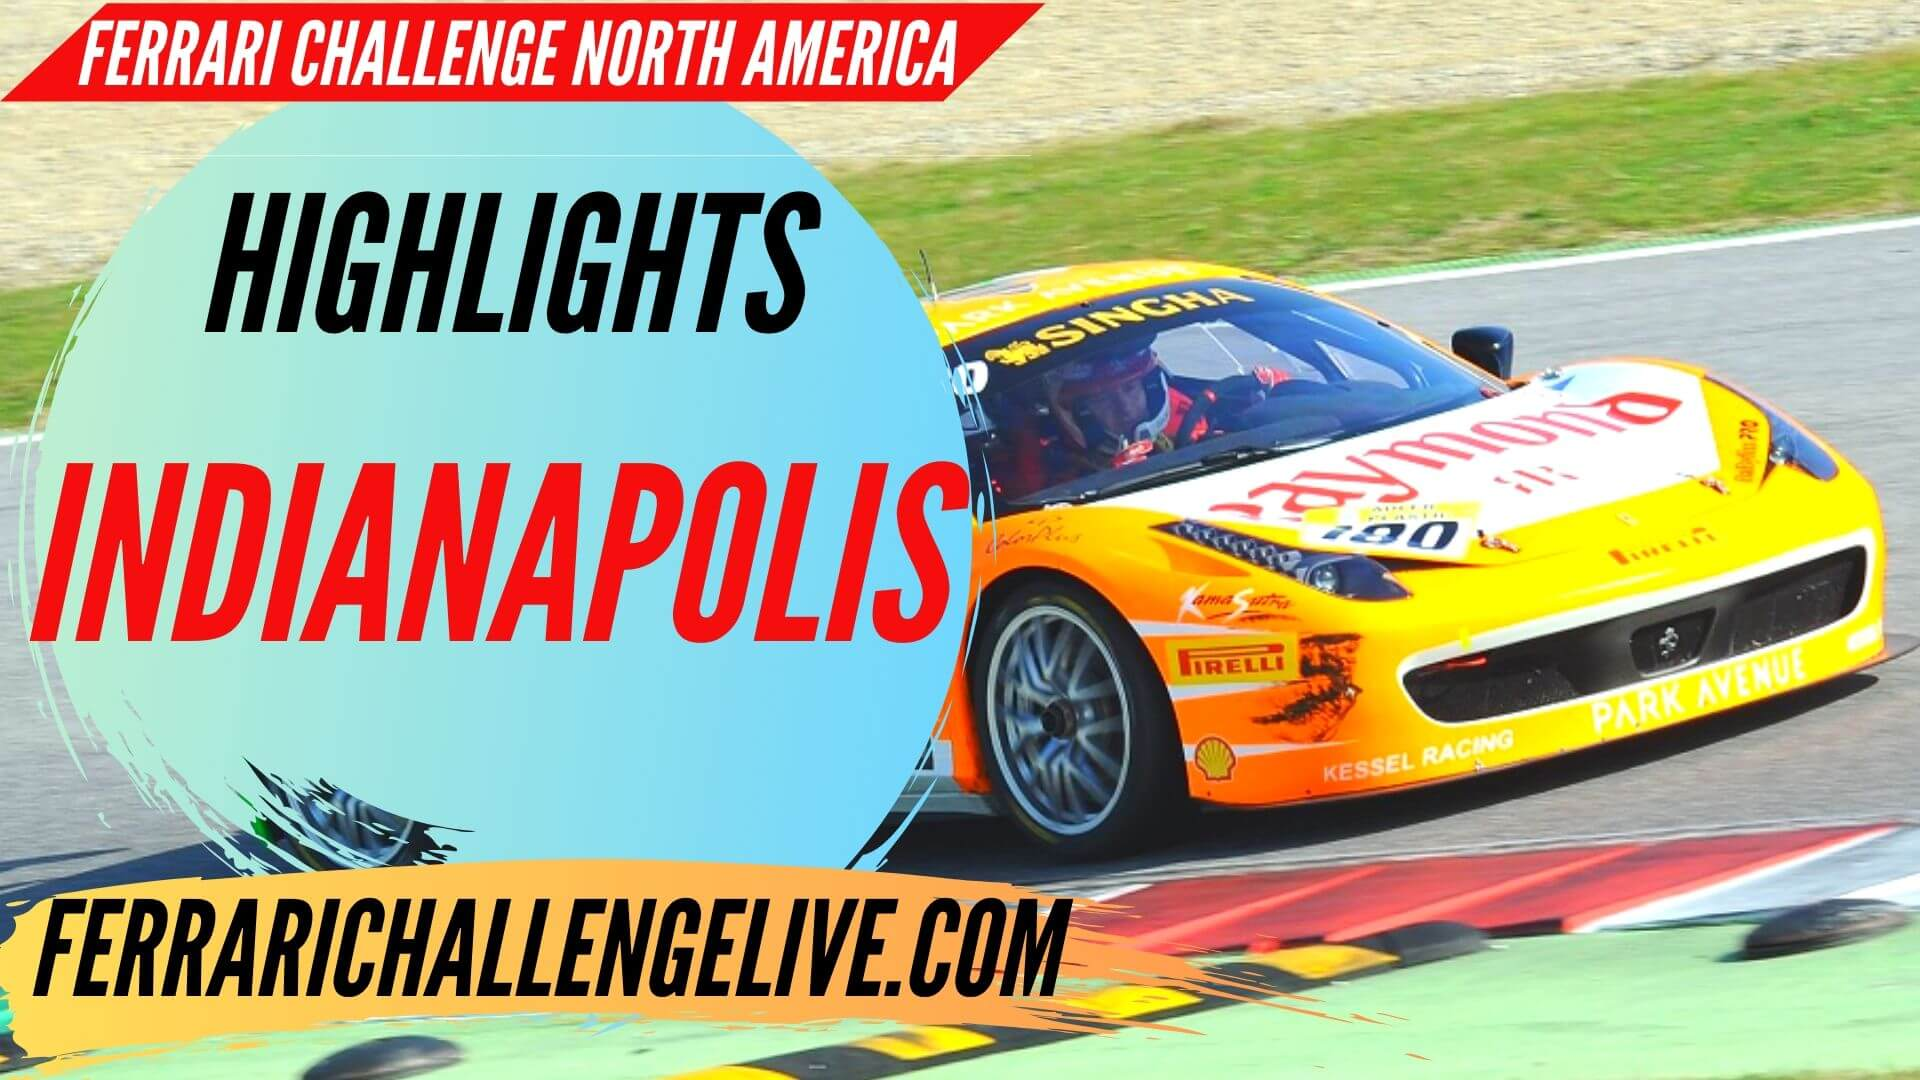 Indianapolis Ferrari Challenge North America Highlights 2019